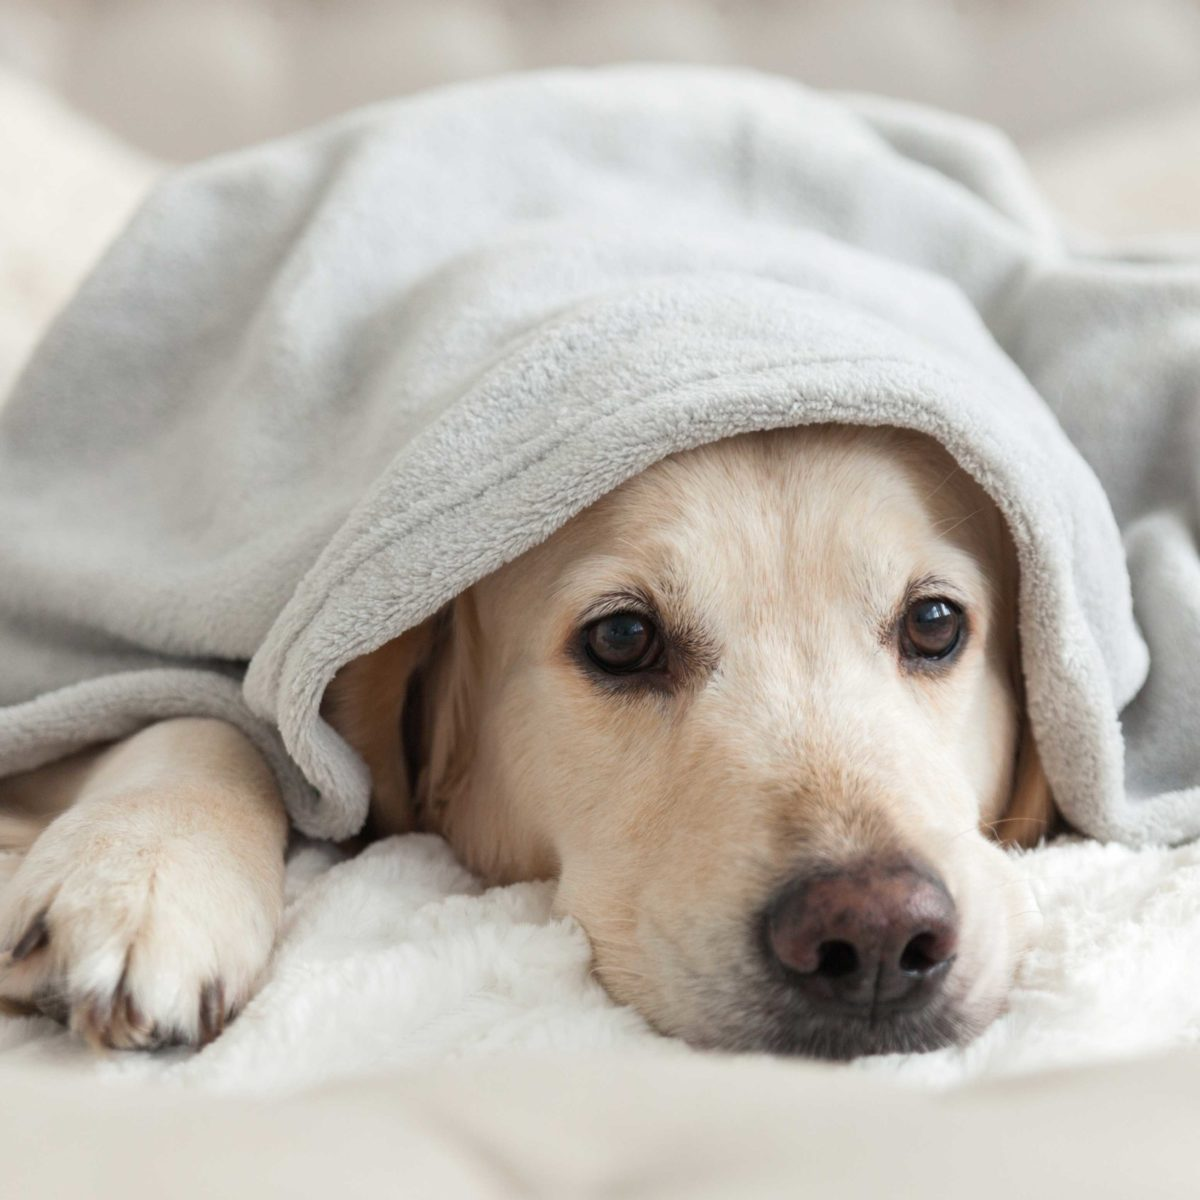 6 Dog Seizure Symptoms to Watch For